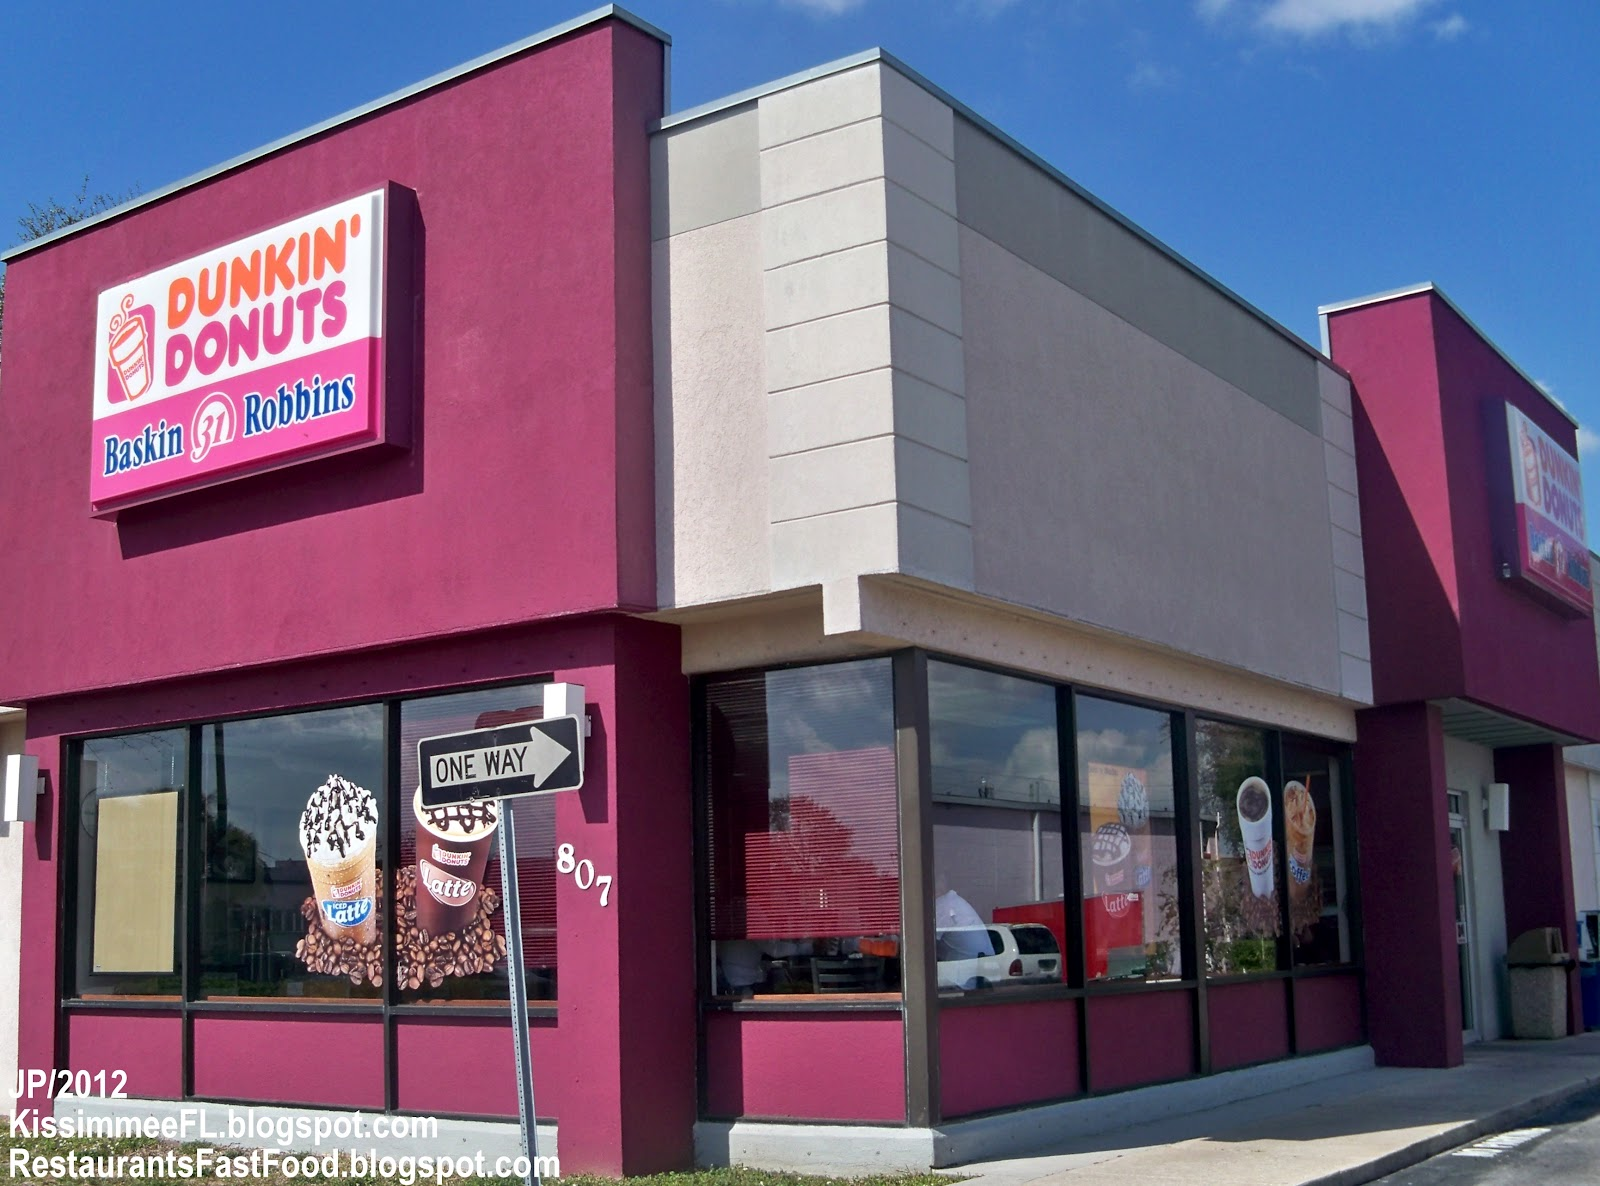 Best Image Of Diagram Dunkin Donuts Stores More Maps Diagram - Dunkin donuts location map usa